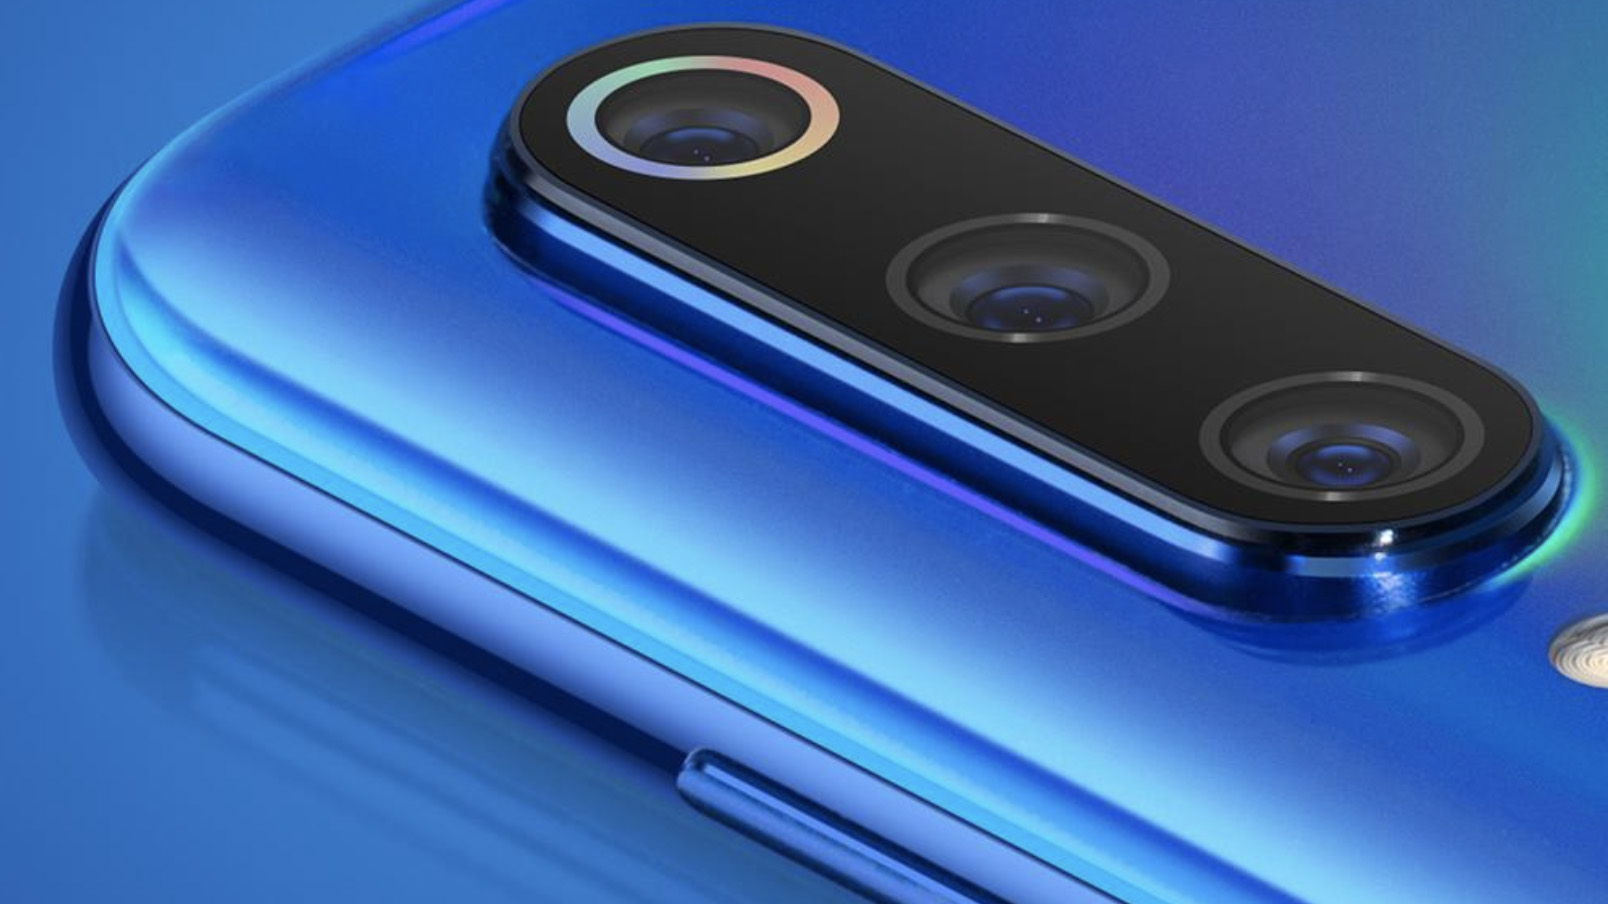 Xiaomi to launch the world's first 64MP camera phone? | Digital Camera World